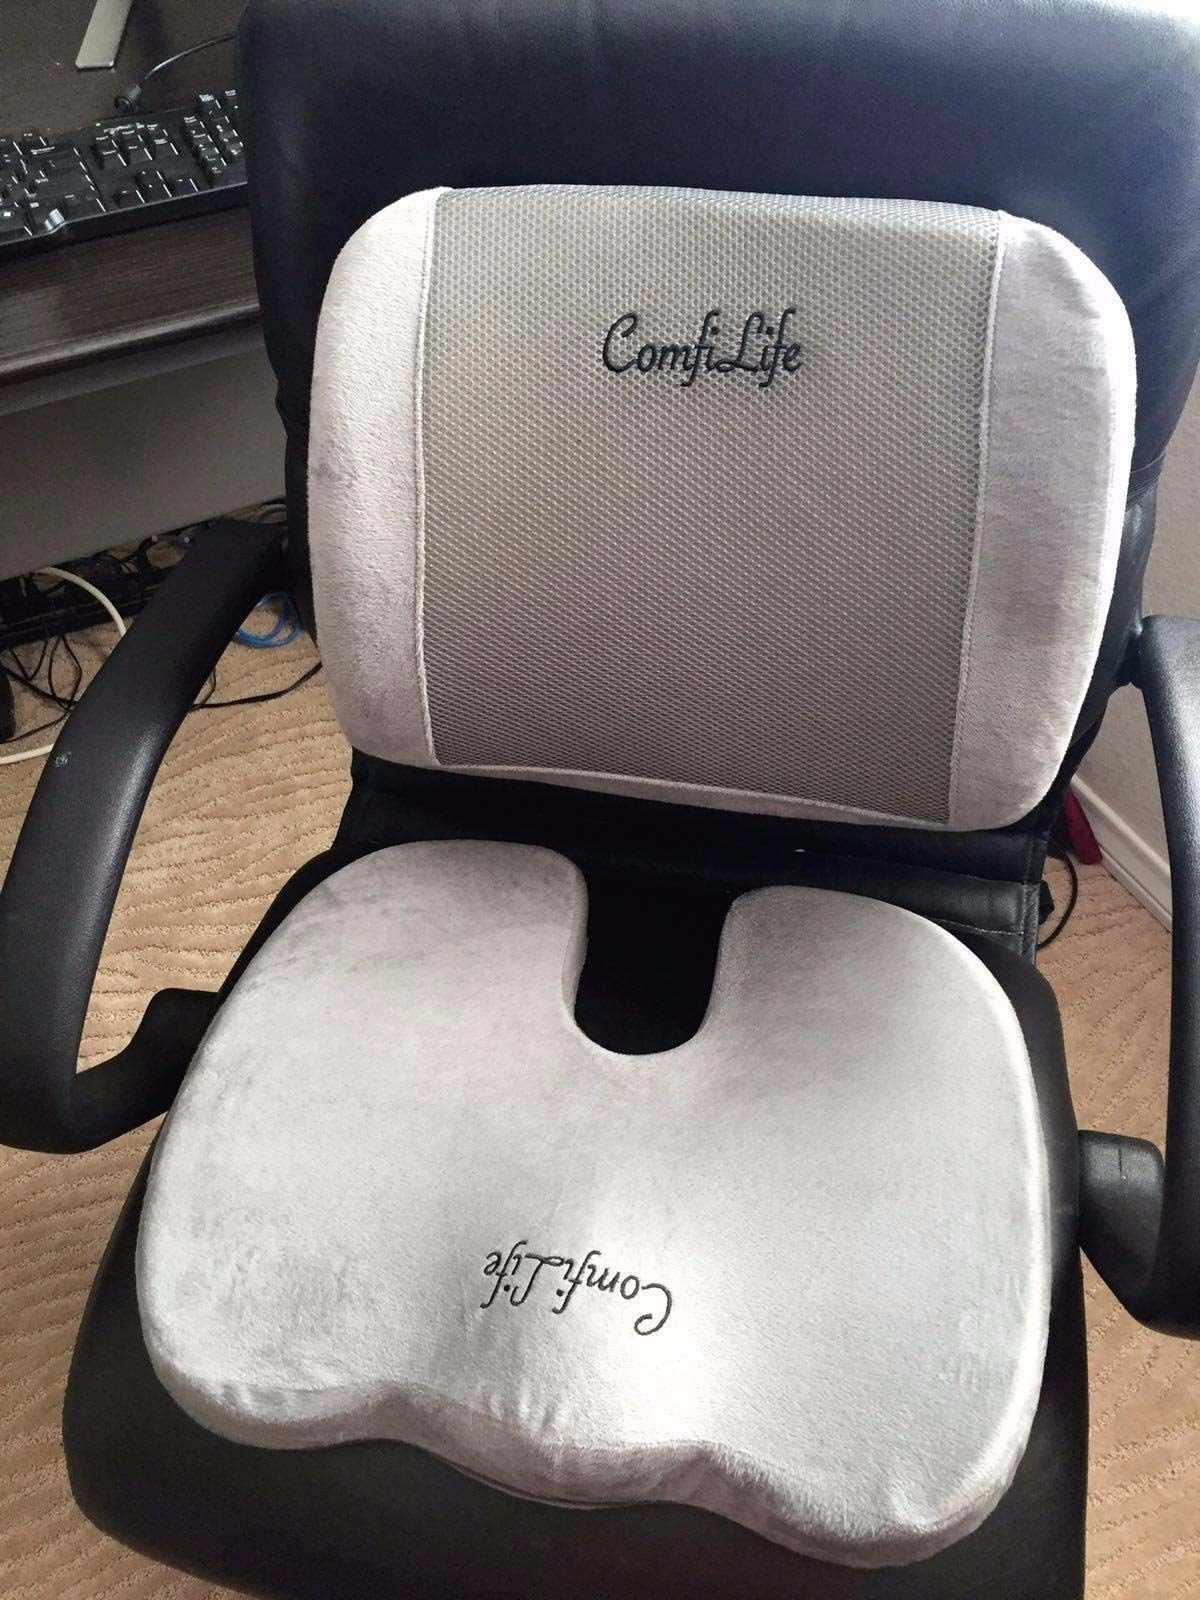 the seat cushion and lumbar pillow placed on a black computer chair